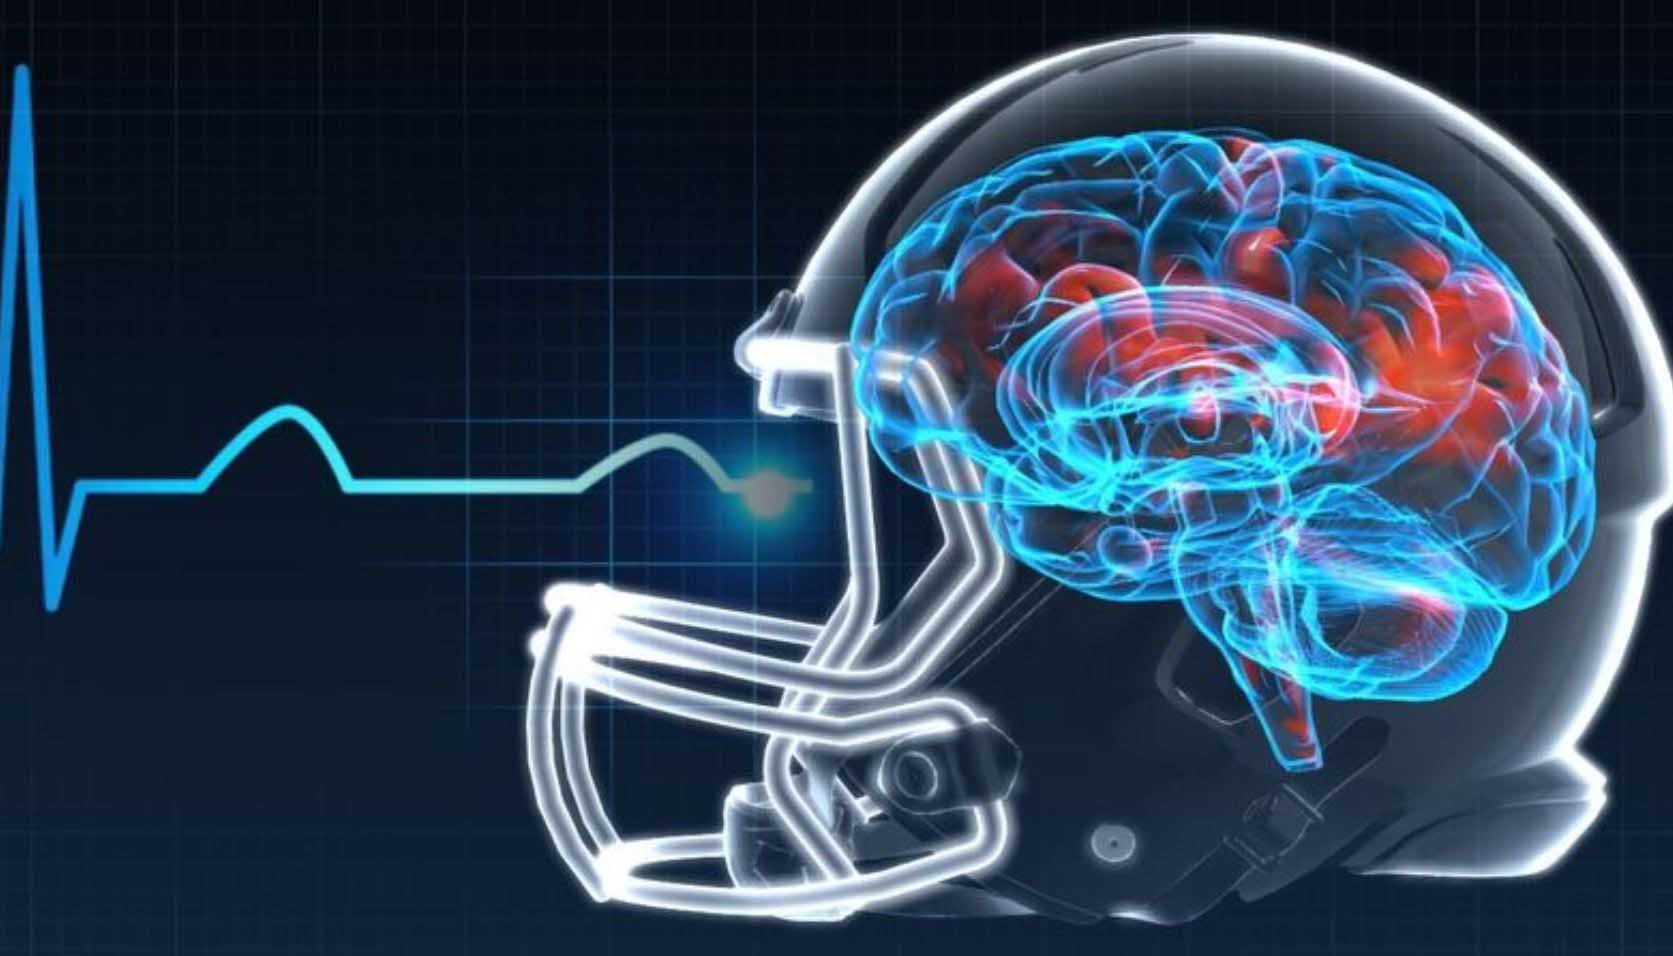 Iowa is now joining other states in offering concussion insurance for student athletes. (Source: CNN)